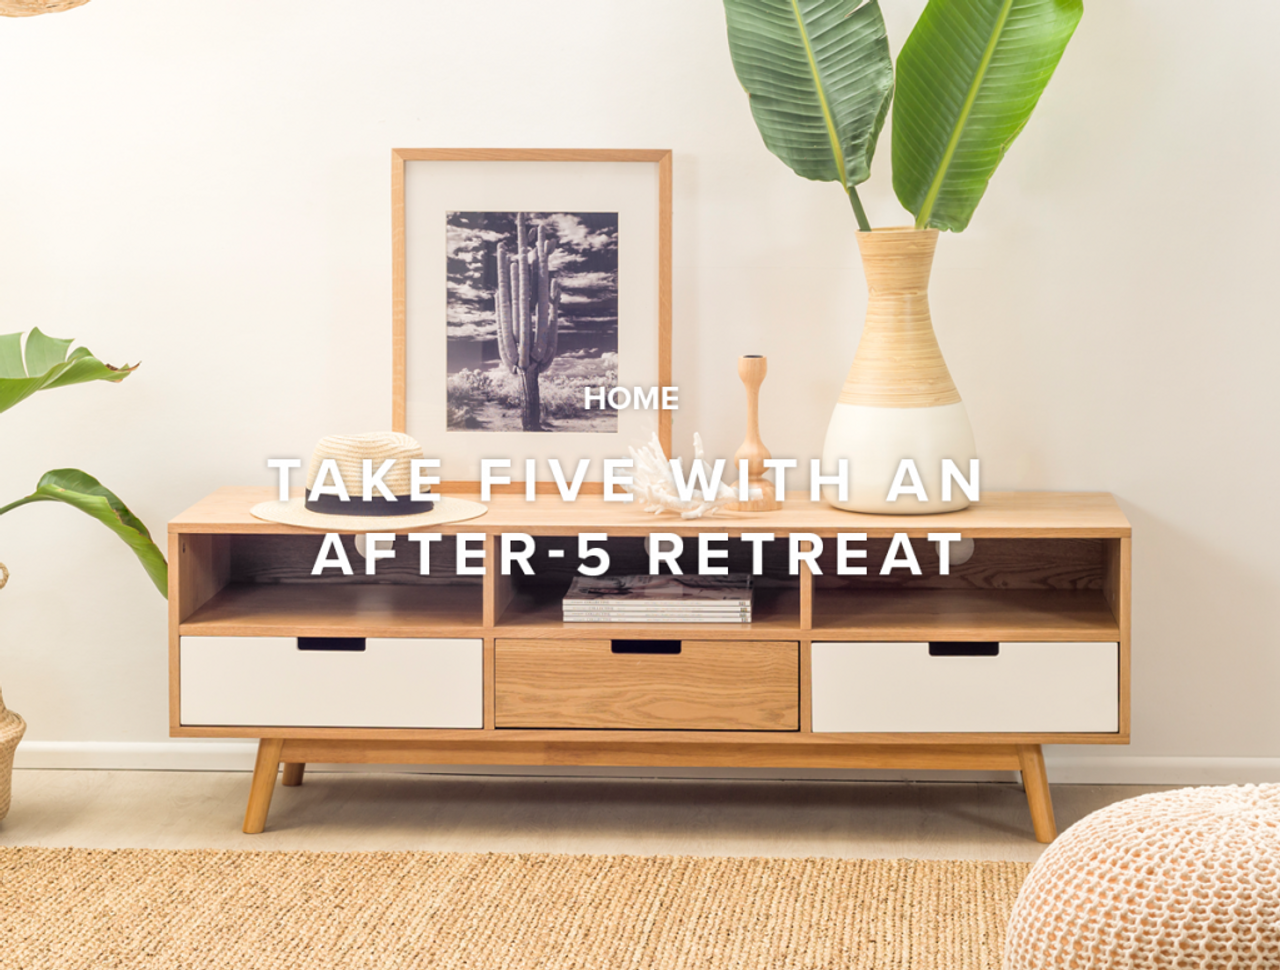 Take Five with an After-5 Retreat